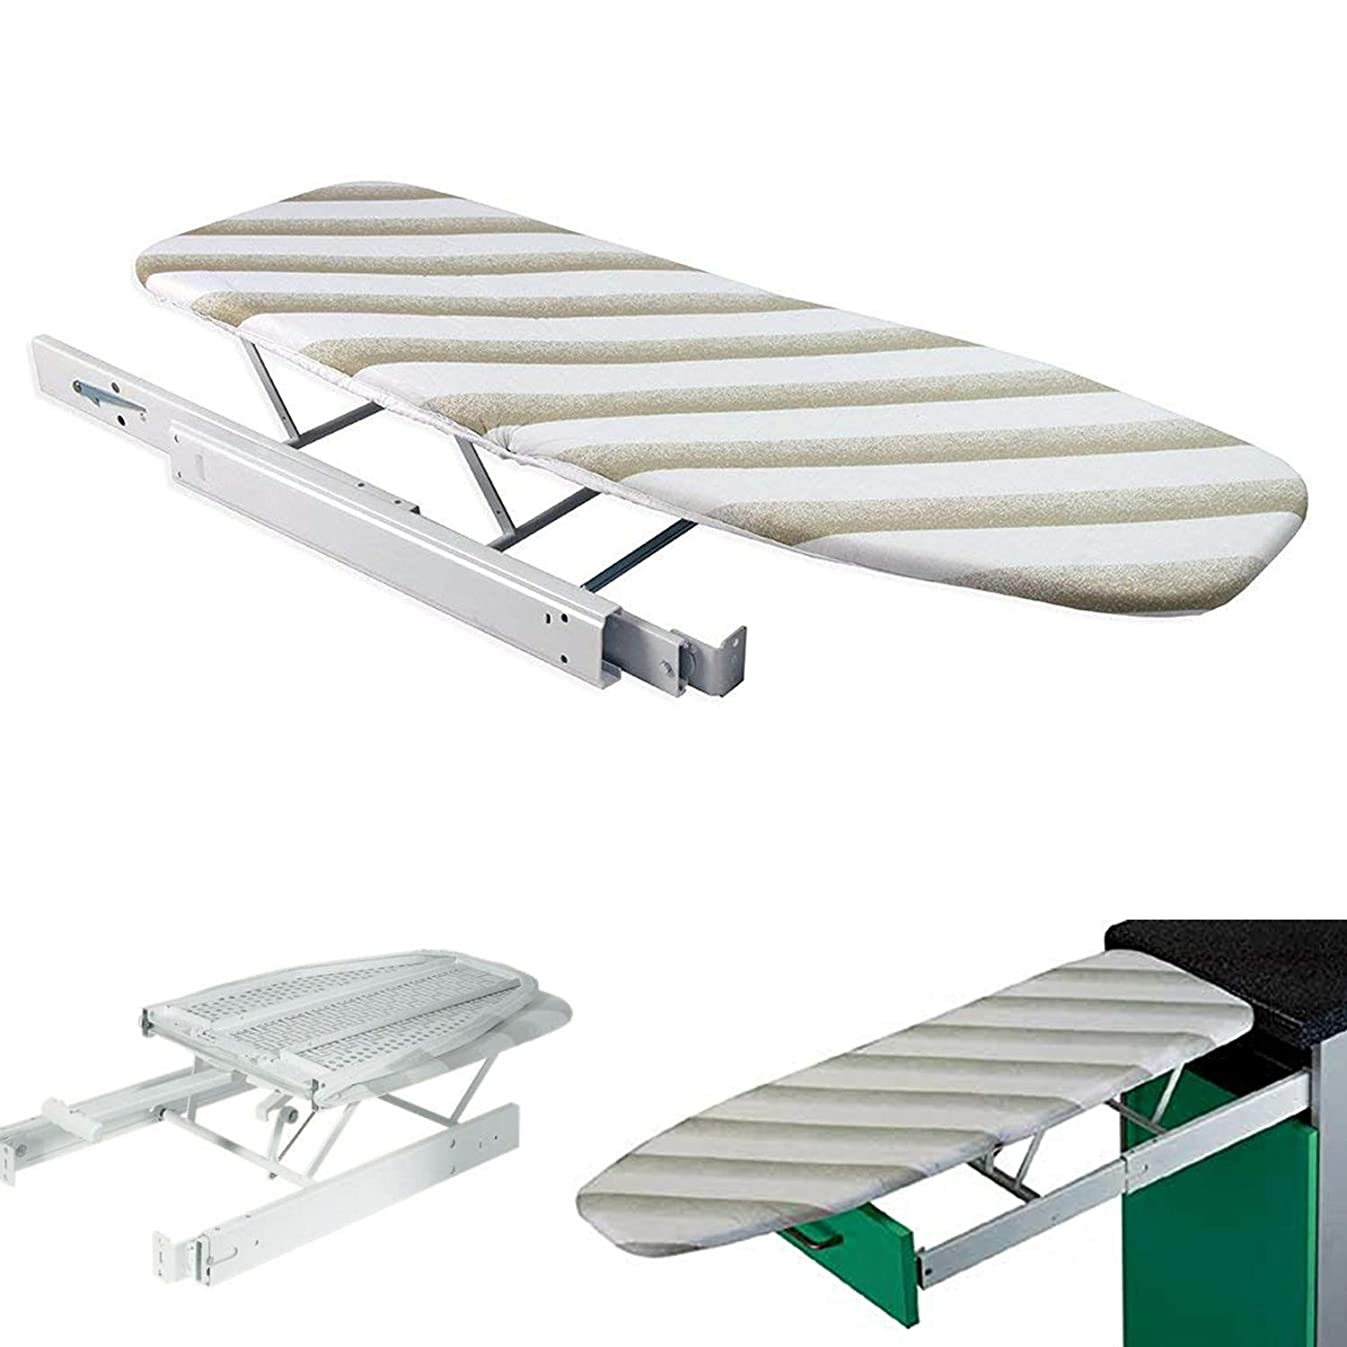 Nisorpa Pull Out Ironing Board Solid Metal Cabinet Built in Iron Board with Cover Foldable Hidden Pullout Swivel Ironing Board for Extractible Drawer Space Saving